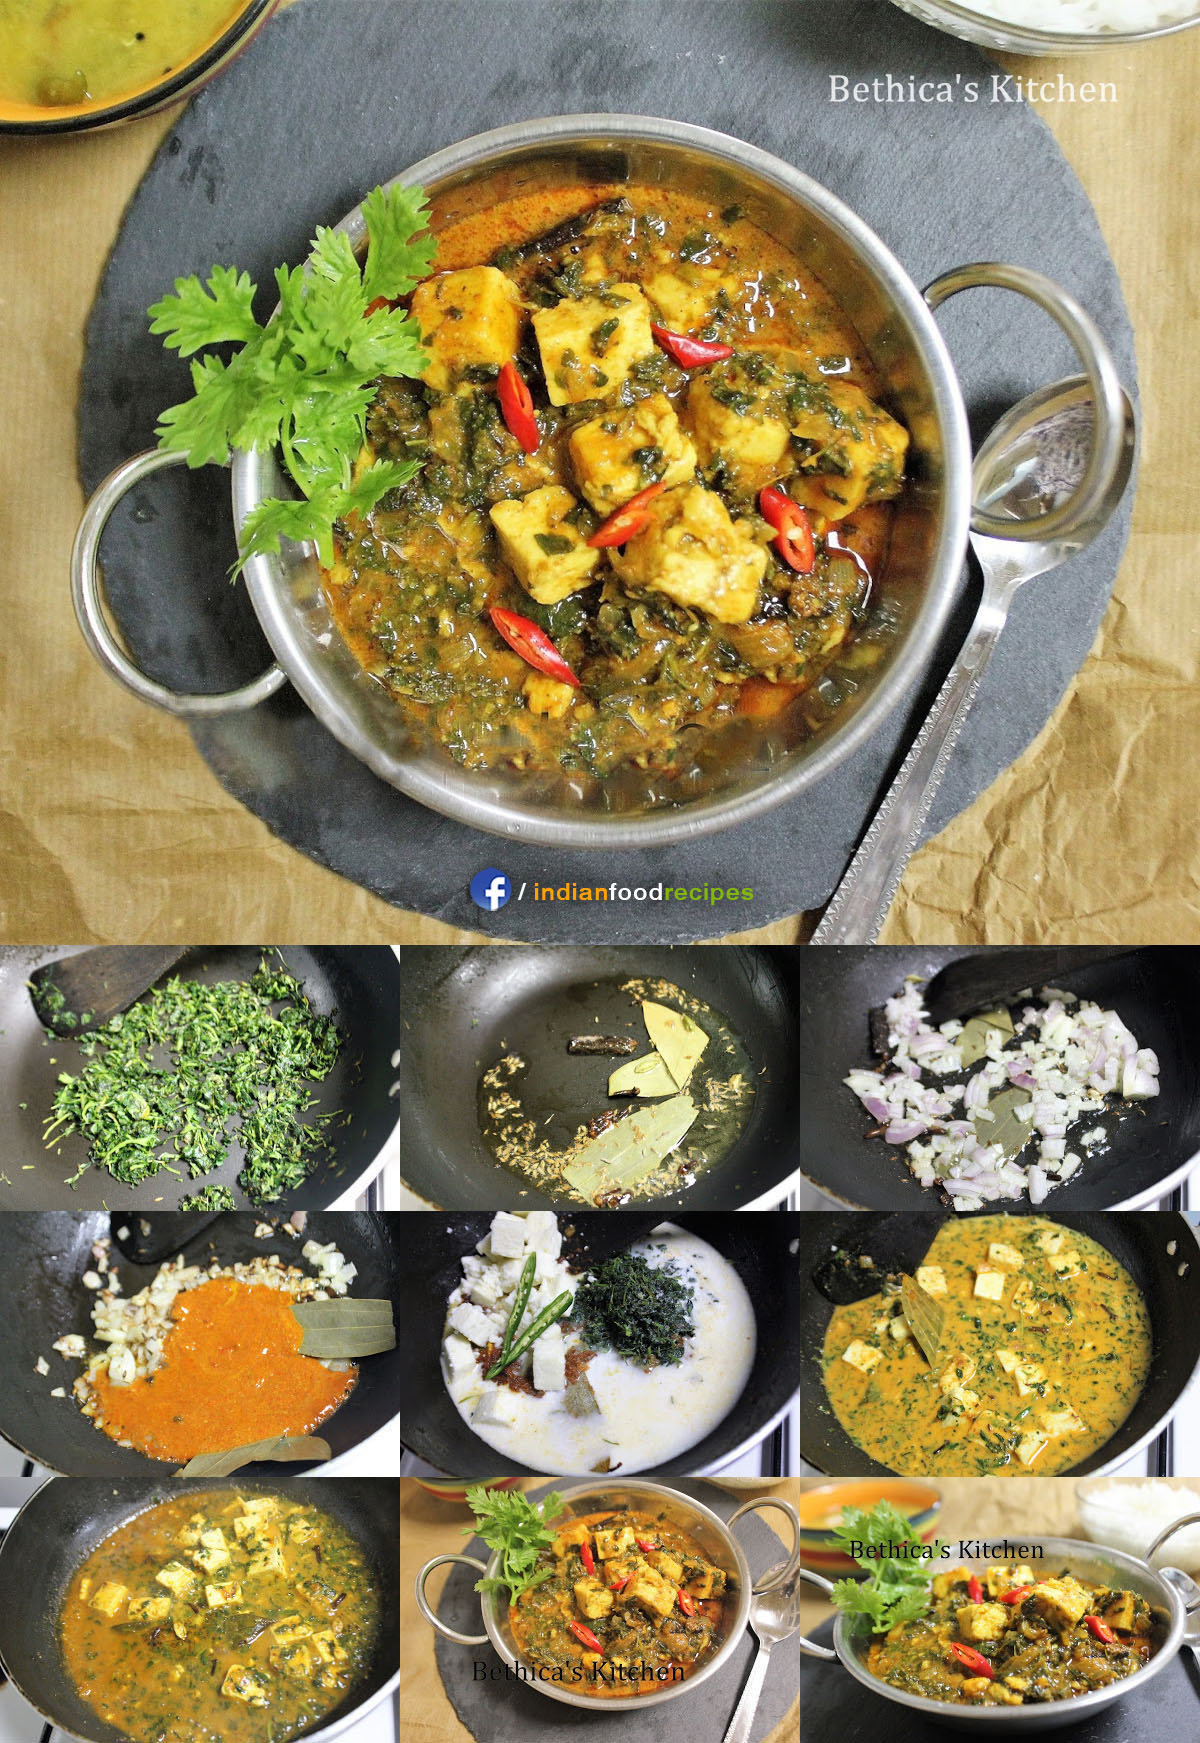 Methi Paneer recipe step by step pictures